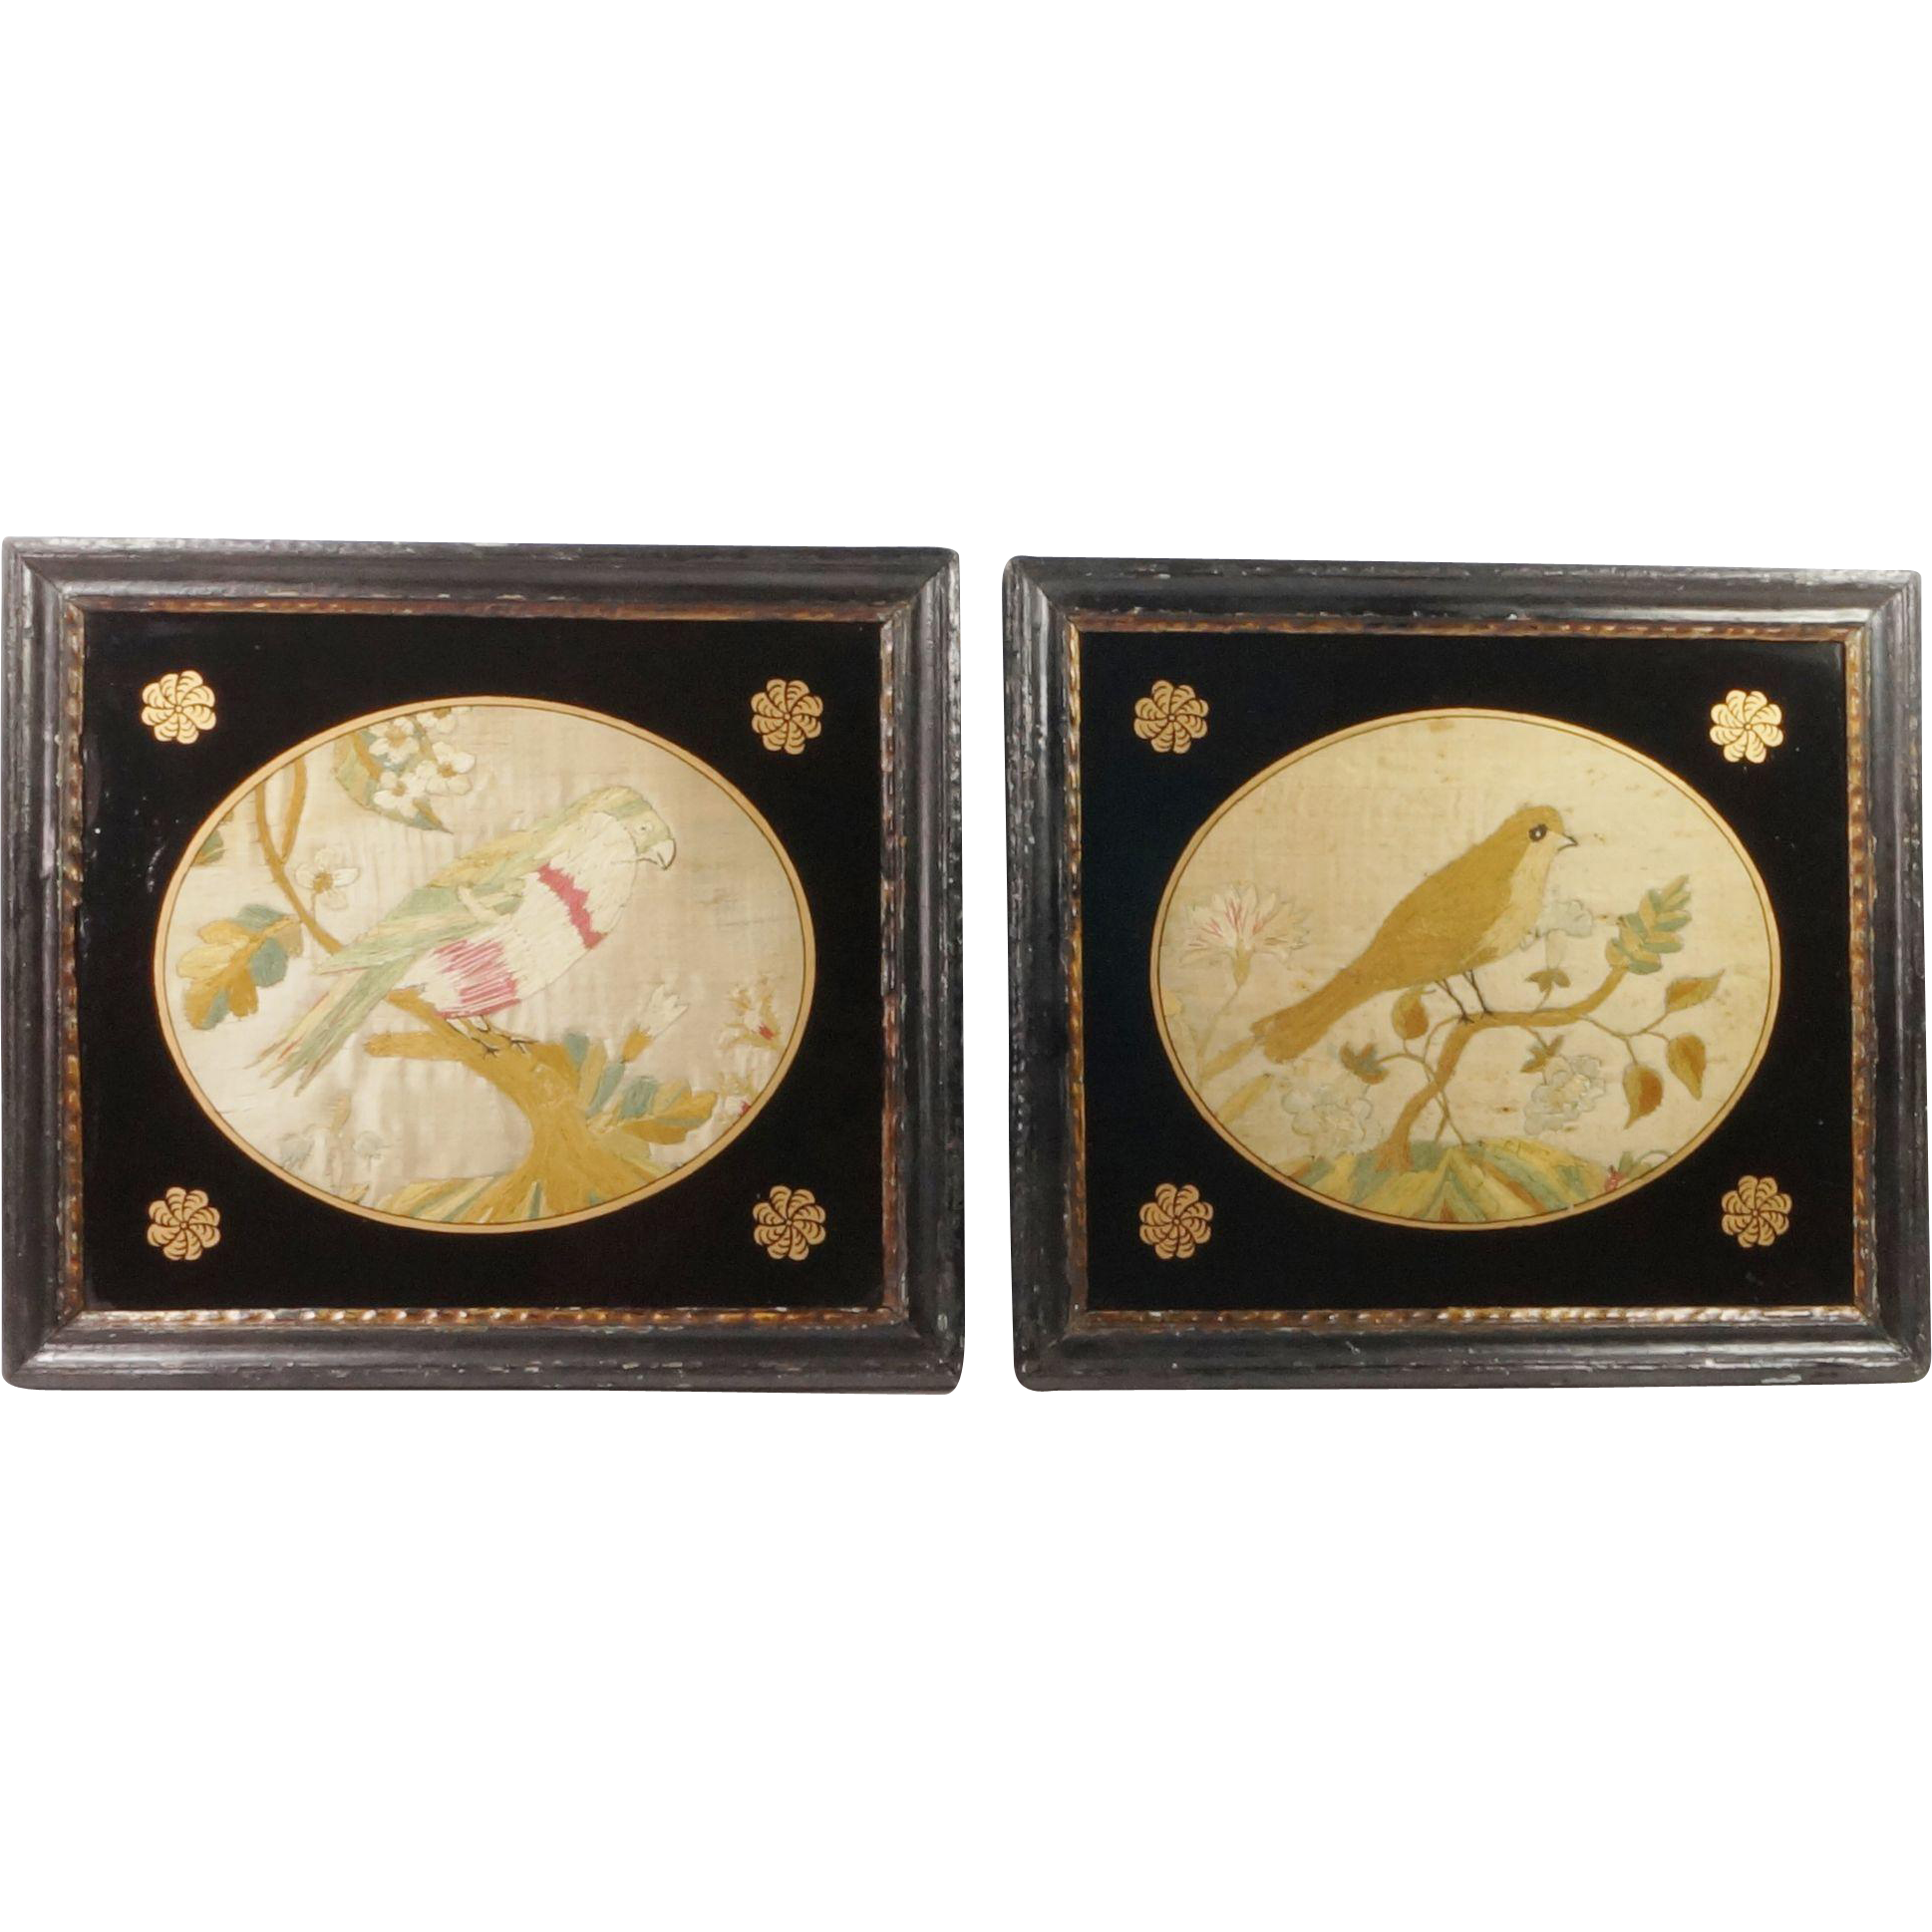 Antique 18th Century Miniature Silkwork Needlework Bird Pair Rare English Circa 1780's Georgian